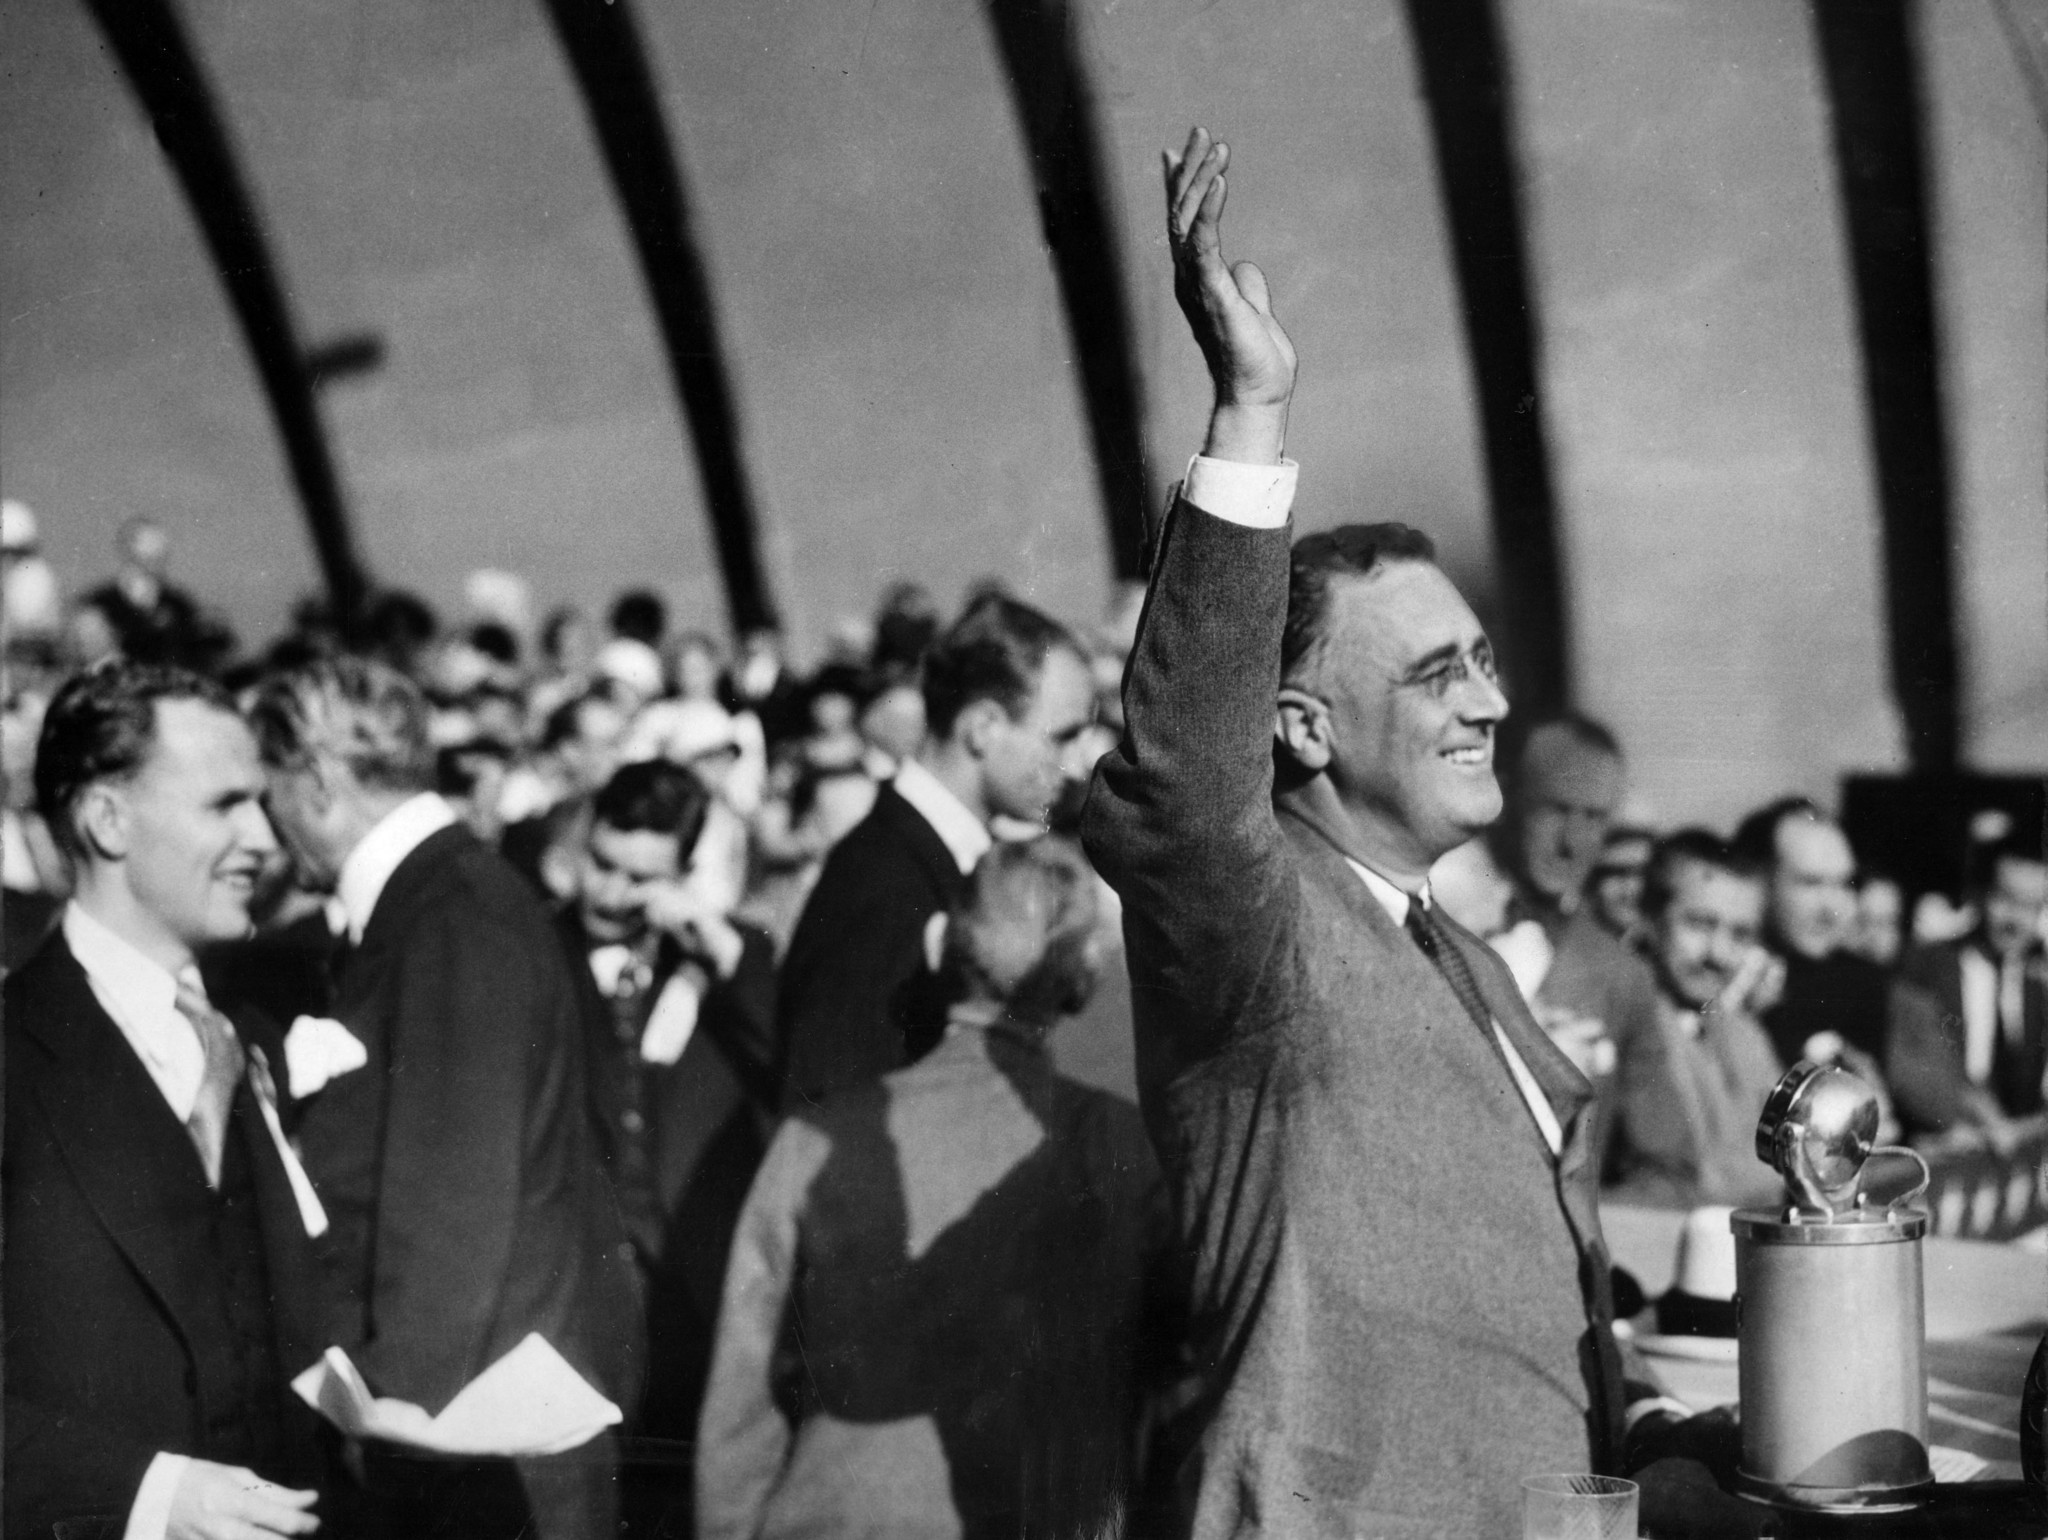 New York Gov. Franklin D. Roosevelt waves to the crowd at the Hollywood Bowl during his presidential campaign in 1932.